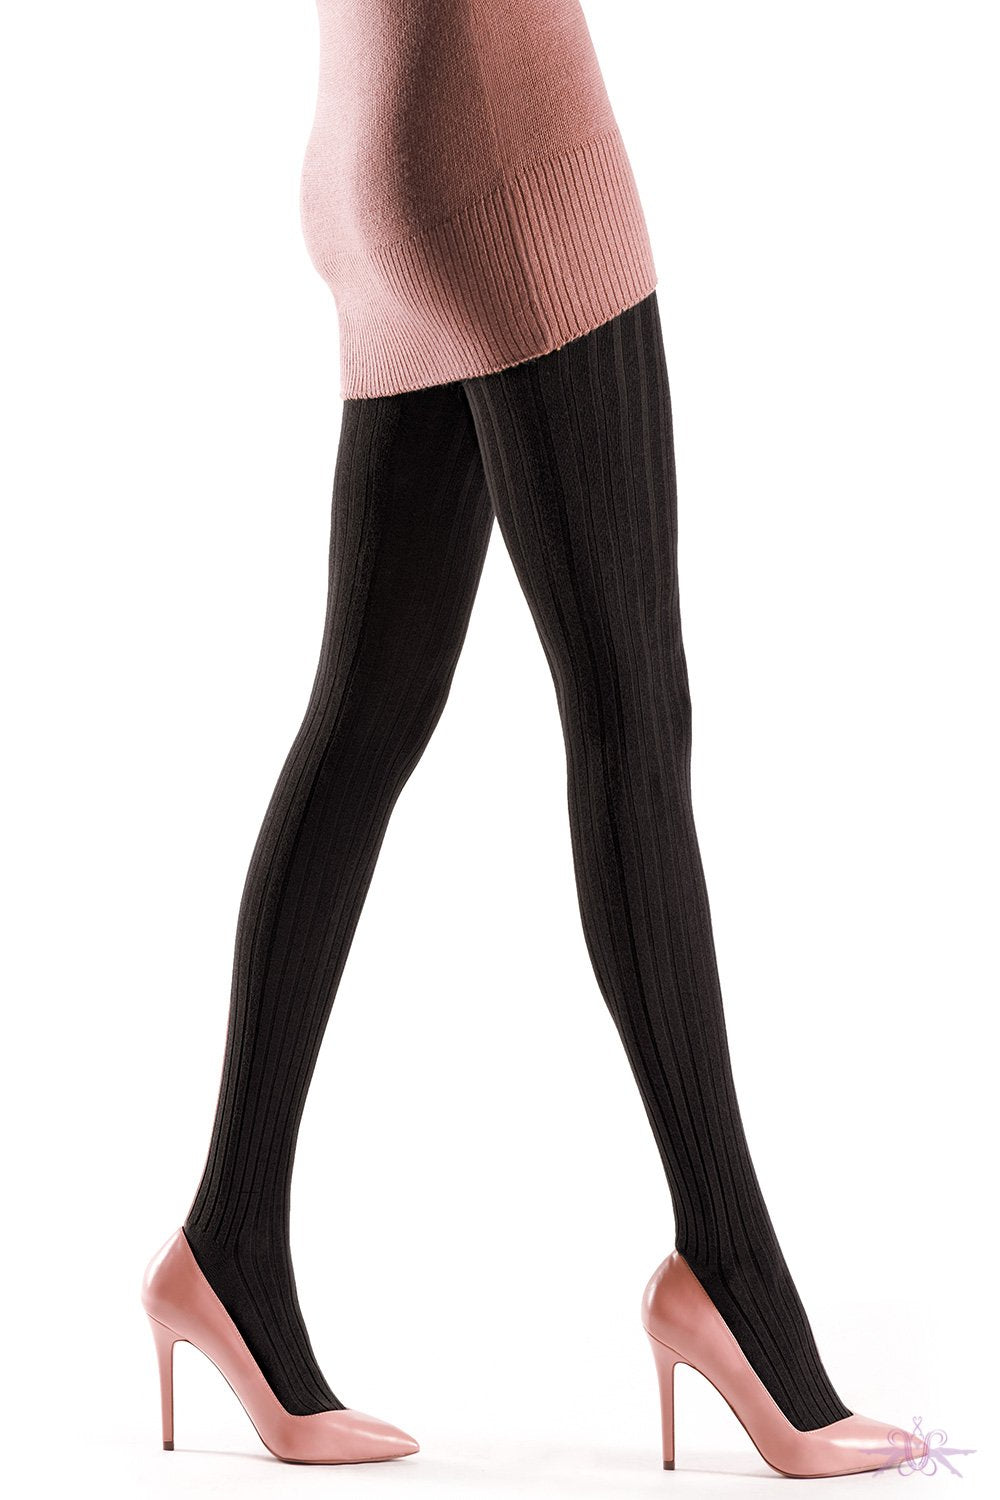 Oroblu Natural Fibres Renee Tights